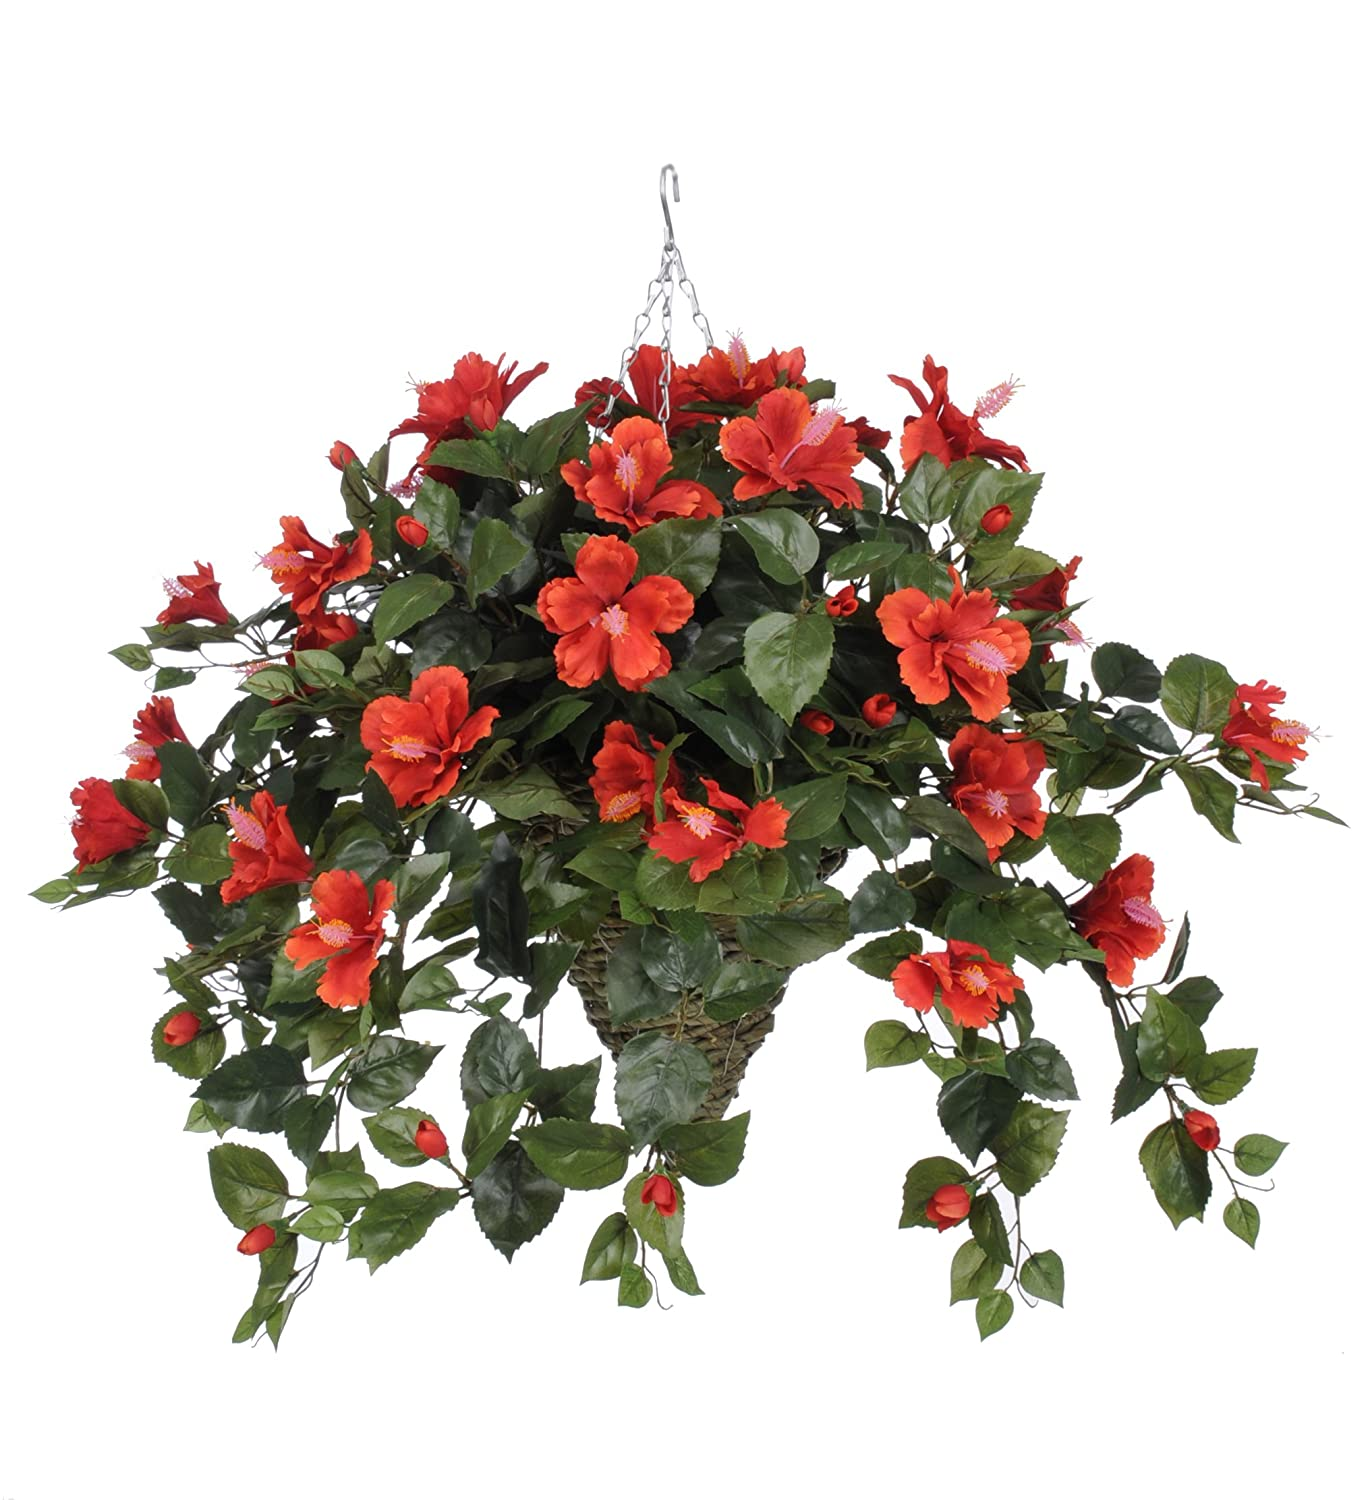 Amazon.com: House of Silk Flowers Artificial Red Hibiscus in ... on windmill palm house plant, periwinkle house plant, lantana house plant, baobab house plant, cereus house plant, pineapple house plant, papaya house plant, kentia palm house plant, acacia house plant, spanish moss house plant, mandevilla house plant, orange house plant, taro house plant, cinnamon house plant, bottle palm house plant, cabbage house plant, vanilla house plant, sorrel house plant, blue ginger house plant, colocasia house plant,